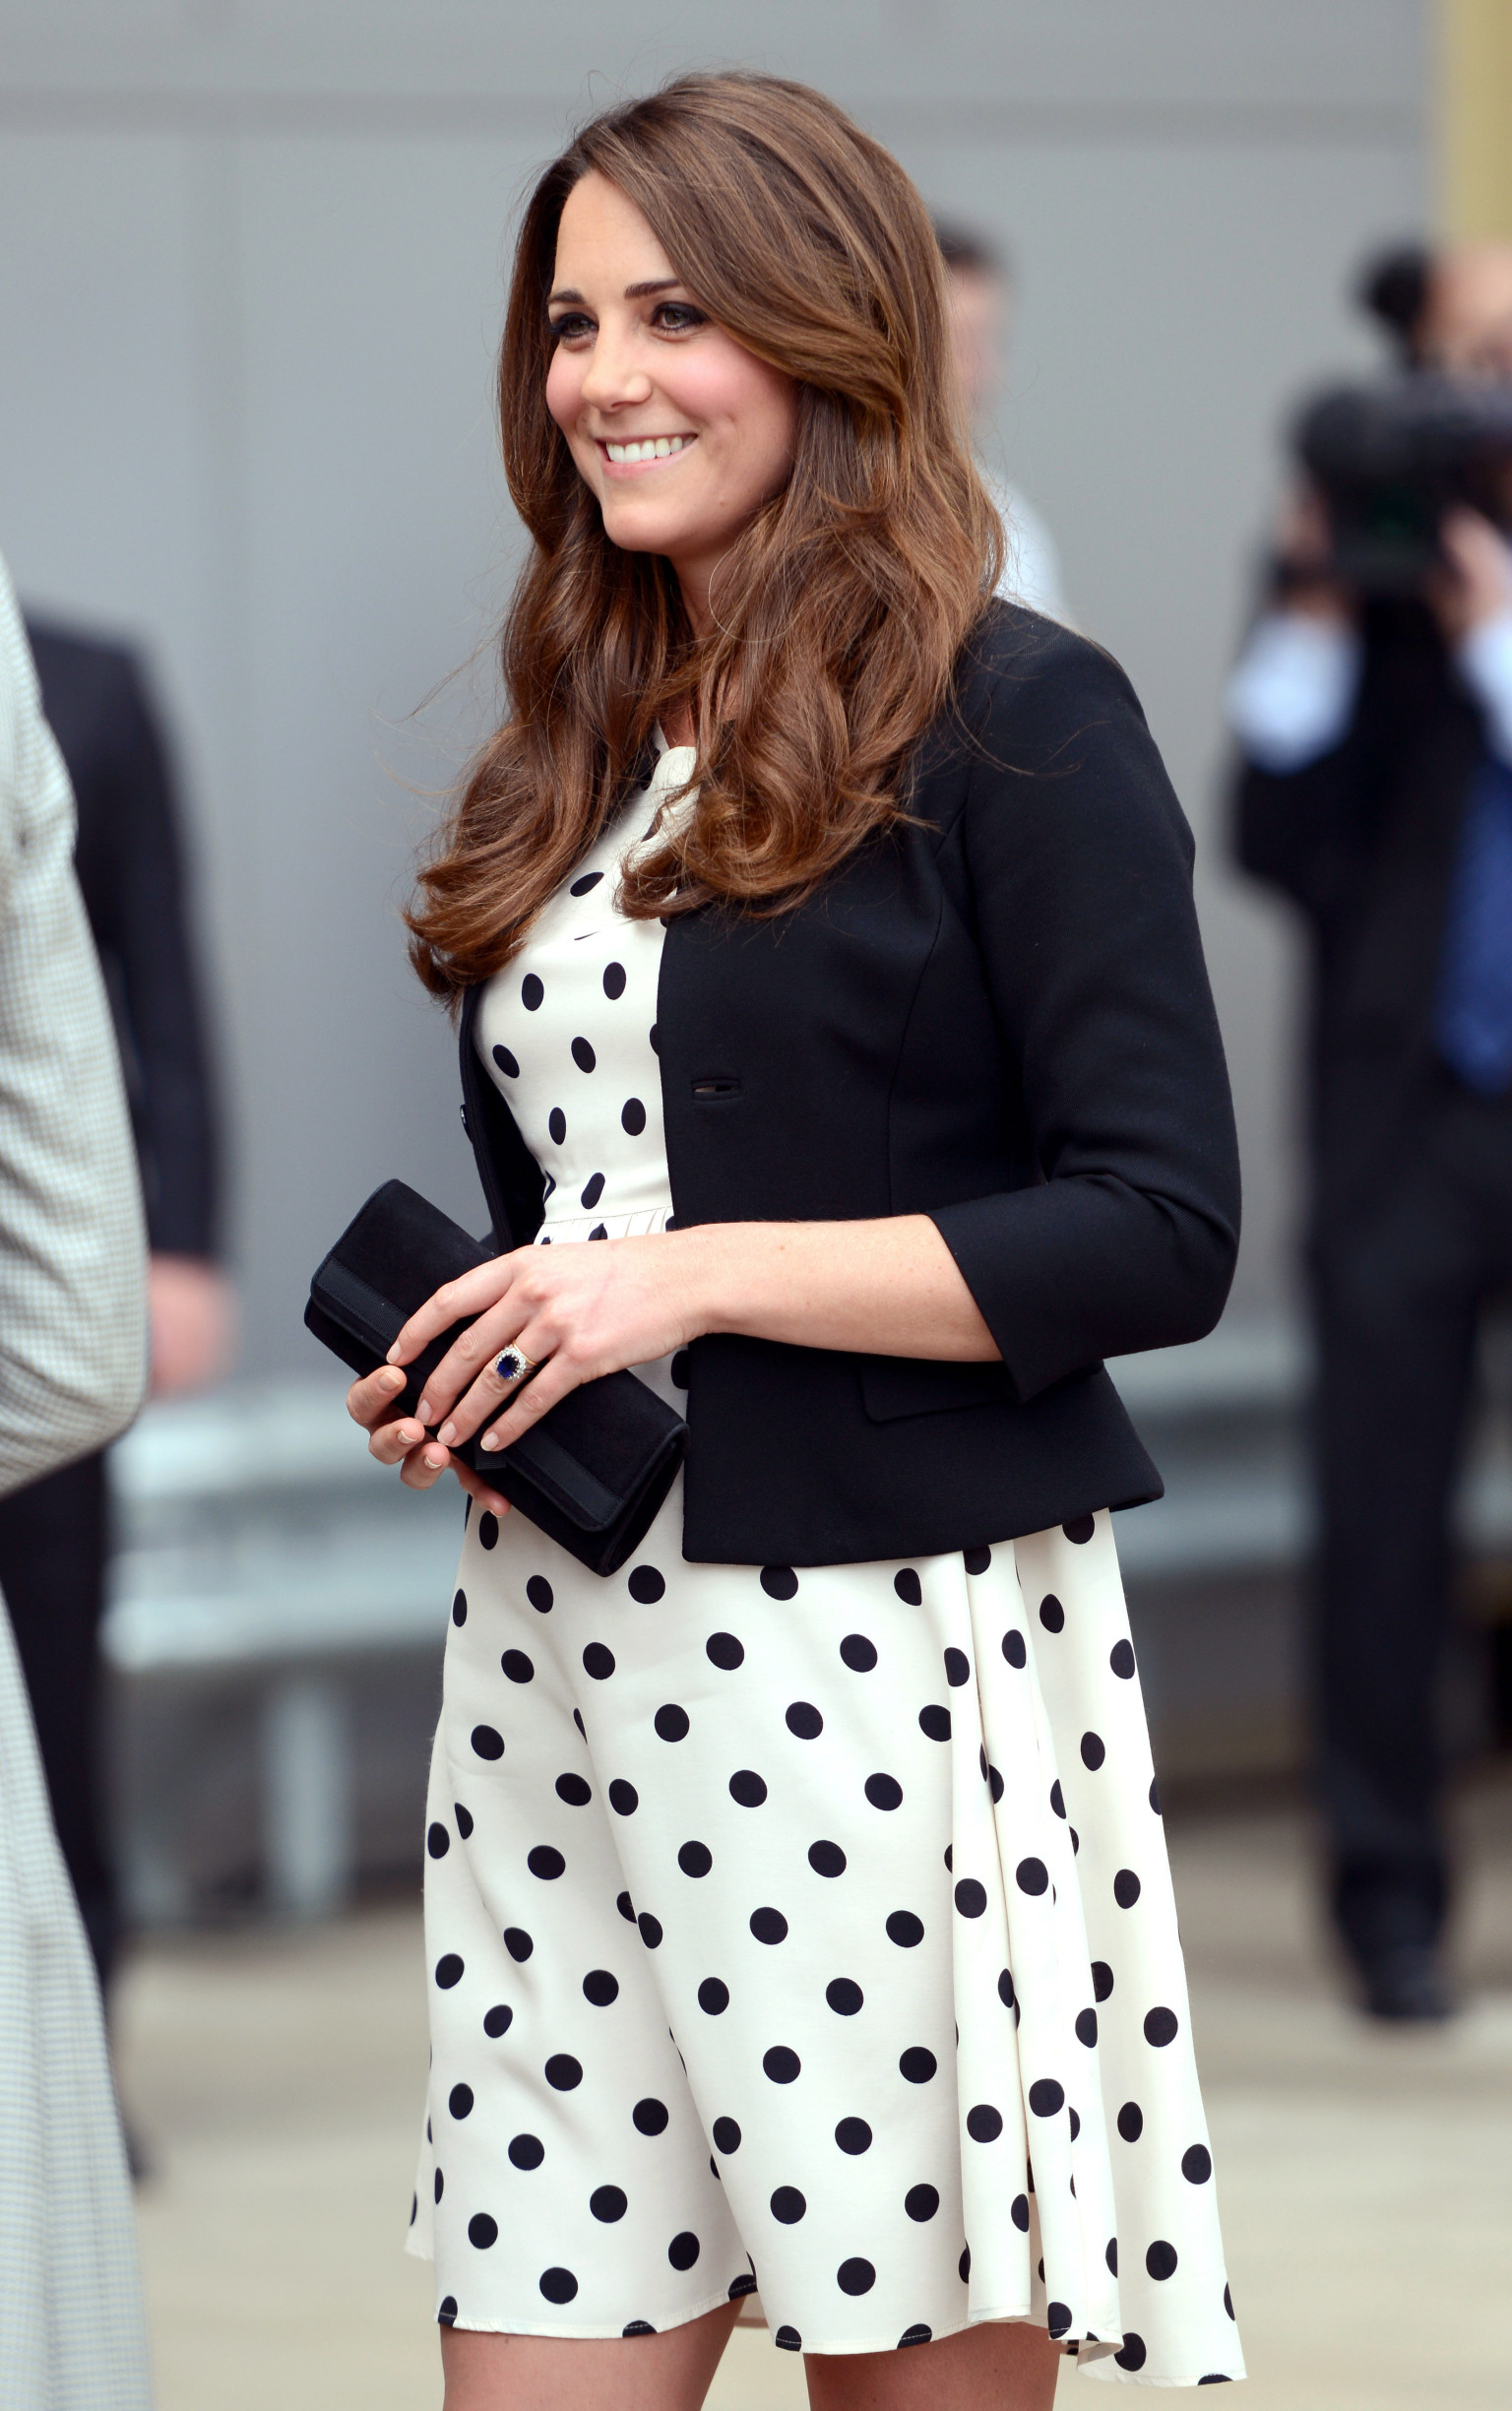 Kate middleton polka dot dressother dressesdressesss kate middleton polka dot dress ombrellifo Image collections